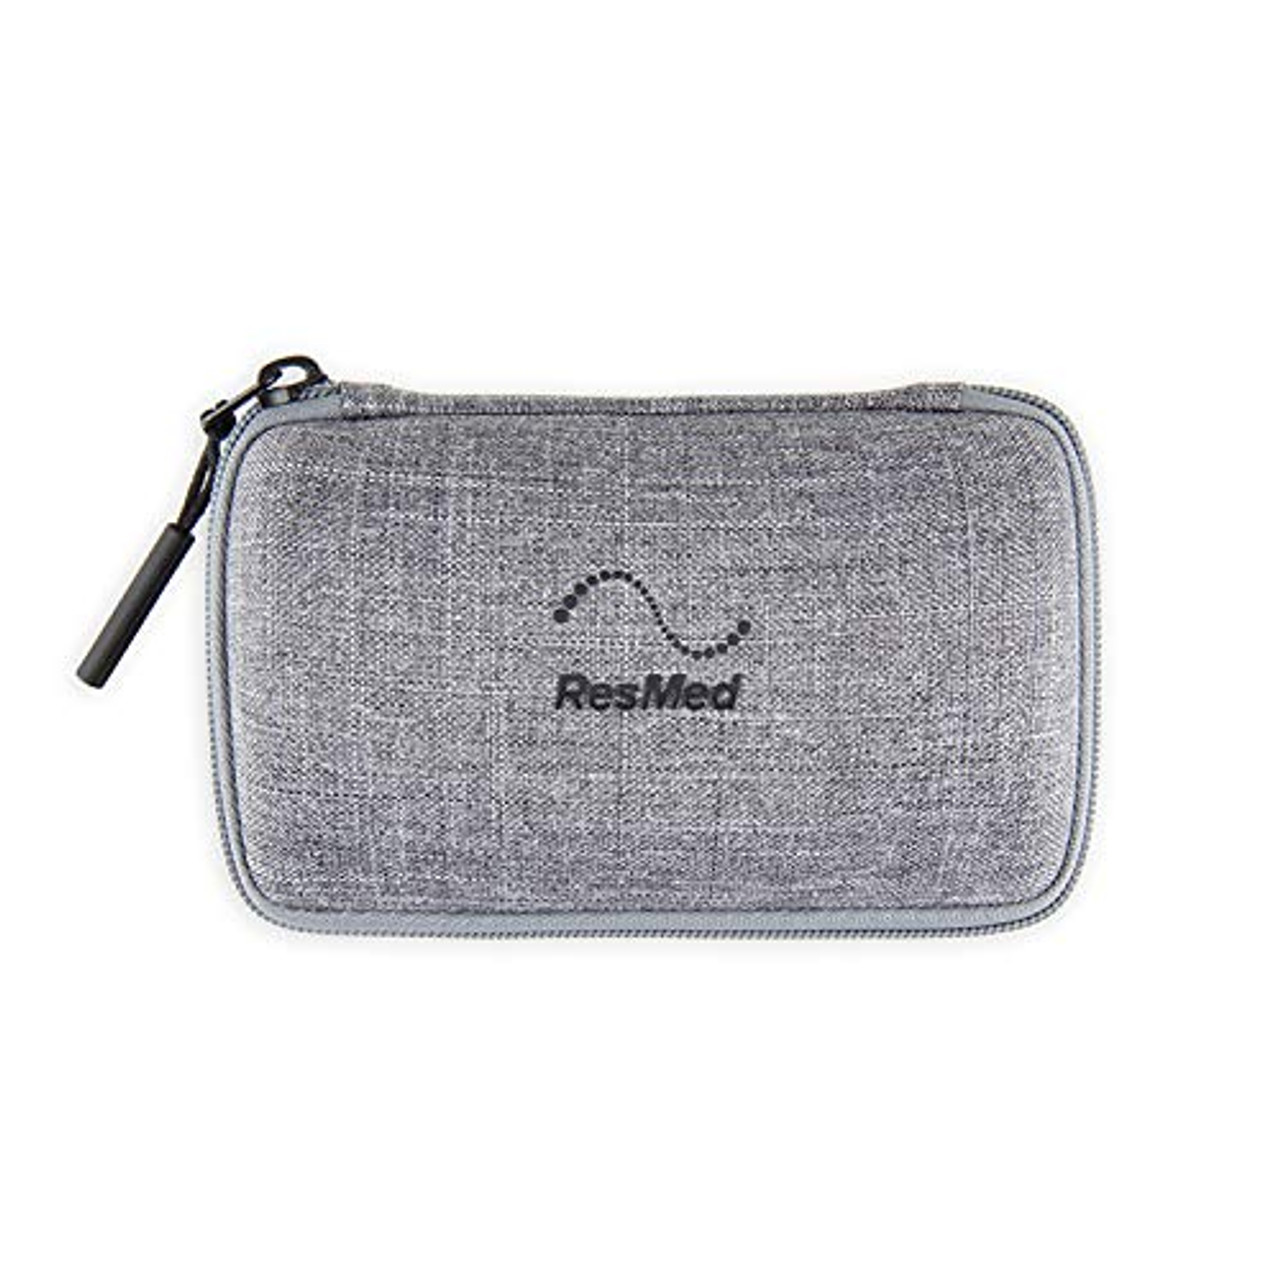 Resmed AirMini Travel Case CPAP